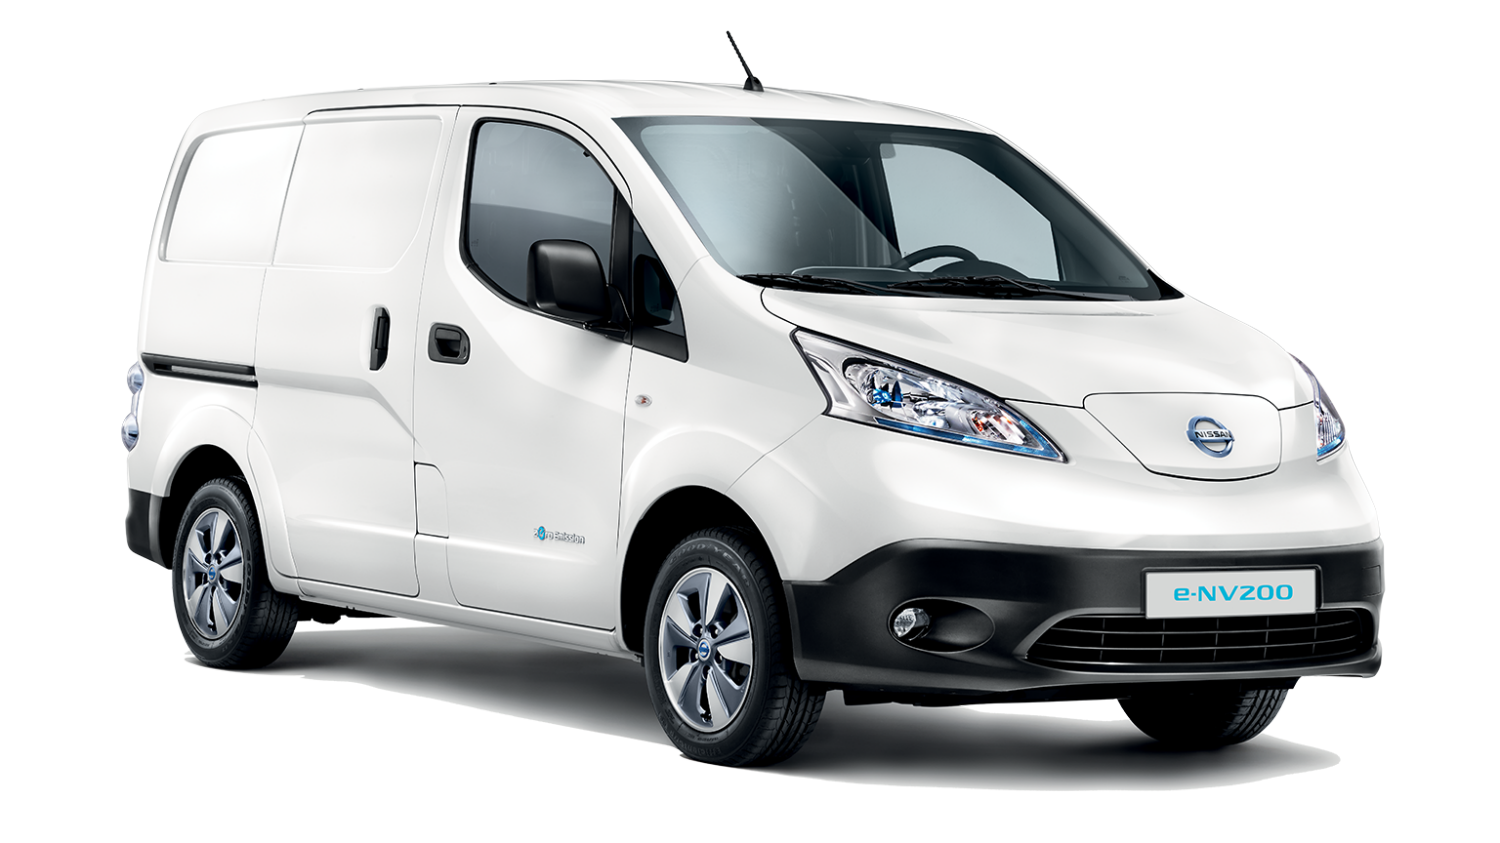 Nissan e-NV200 Flex Business - 3/4 front view